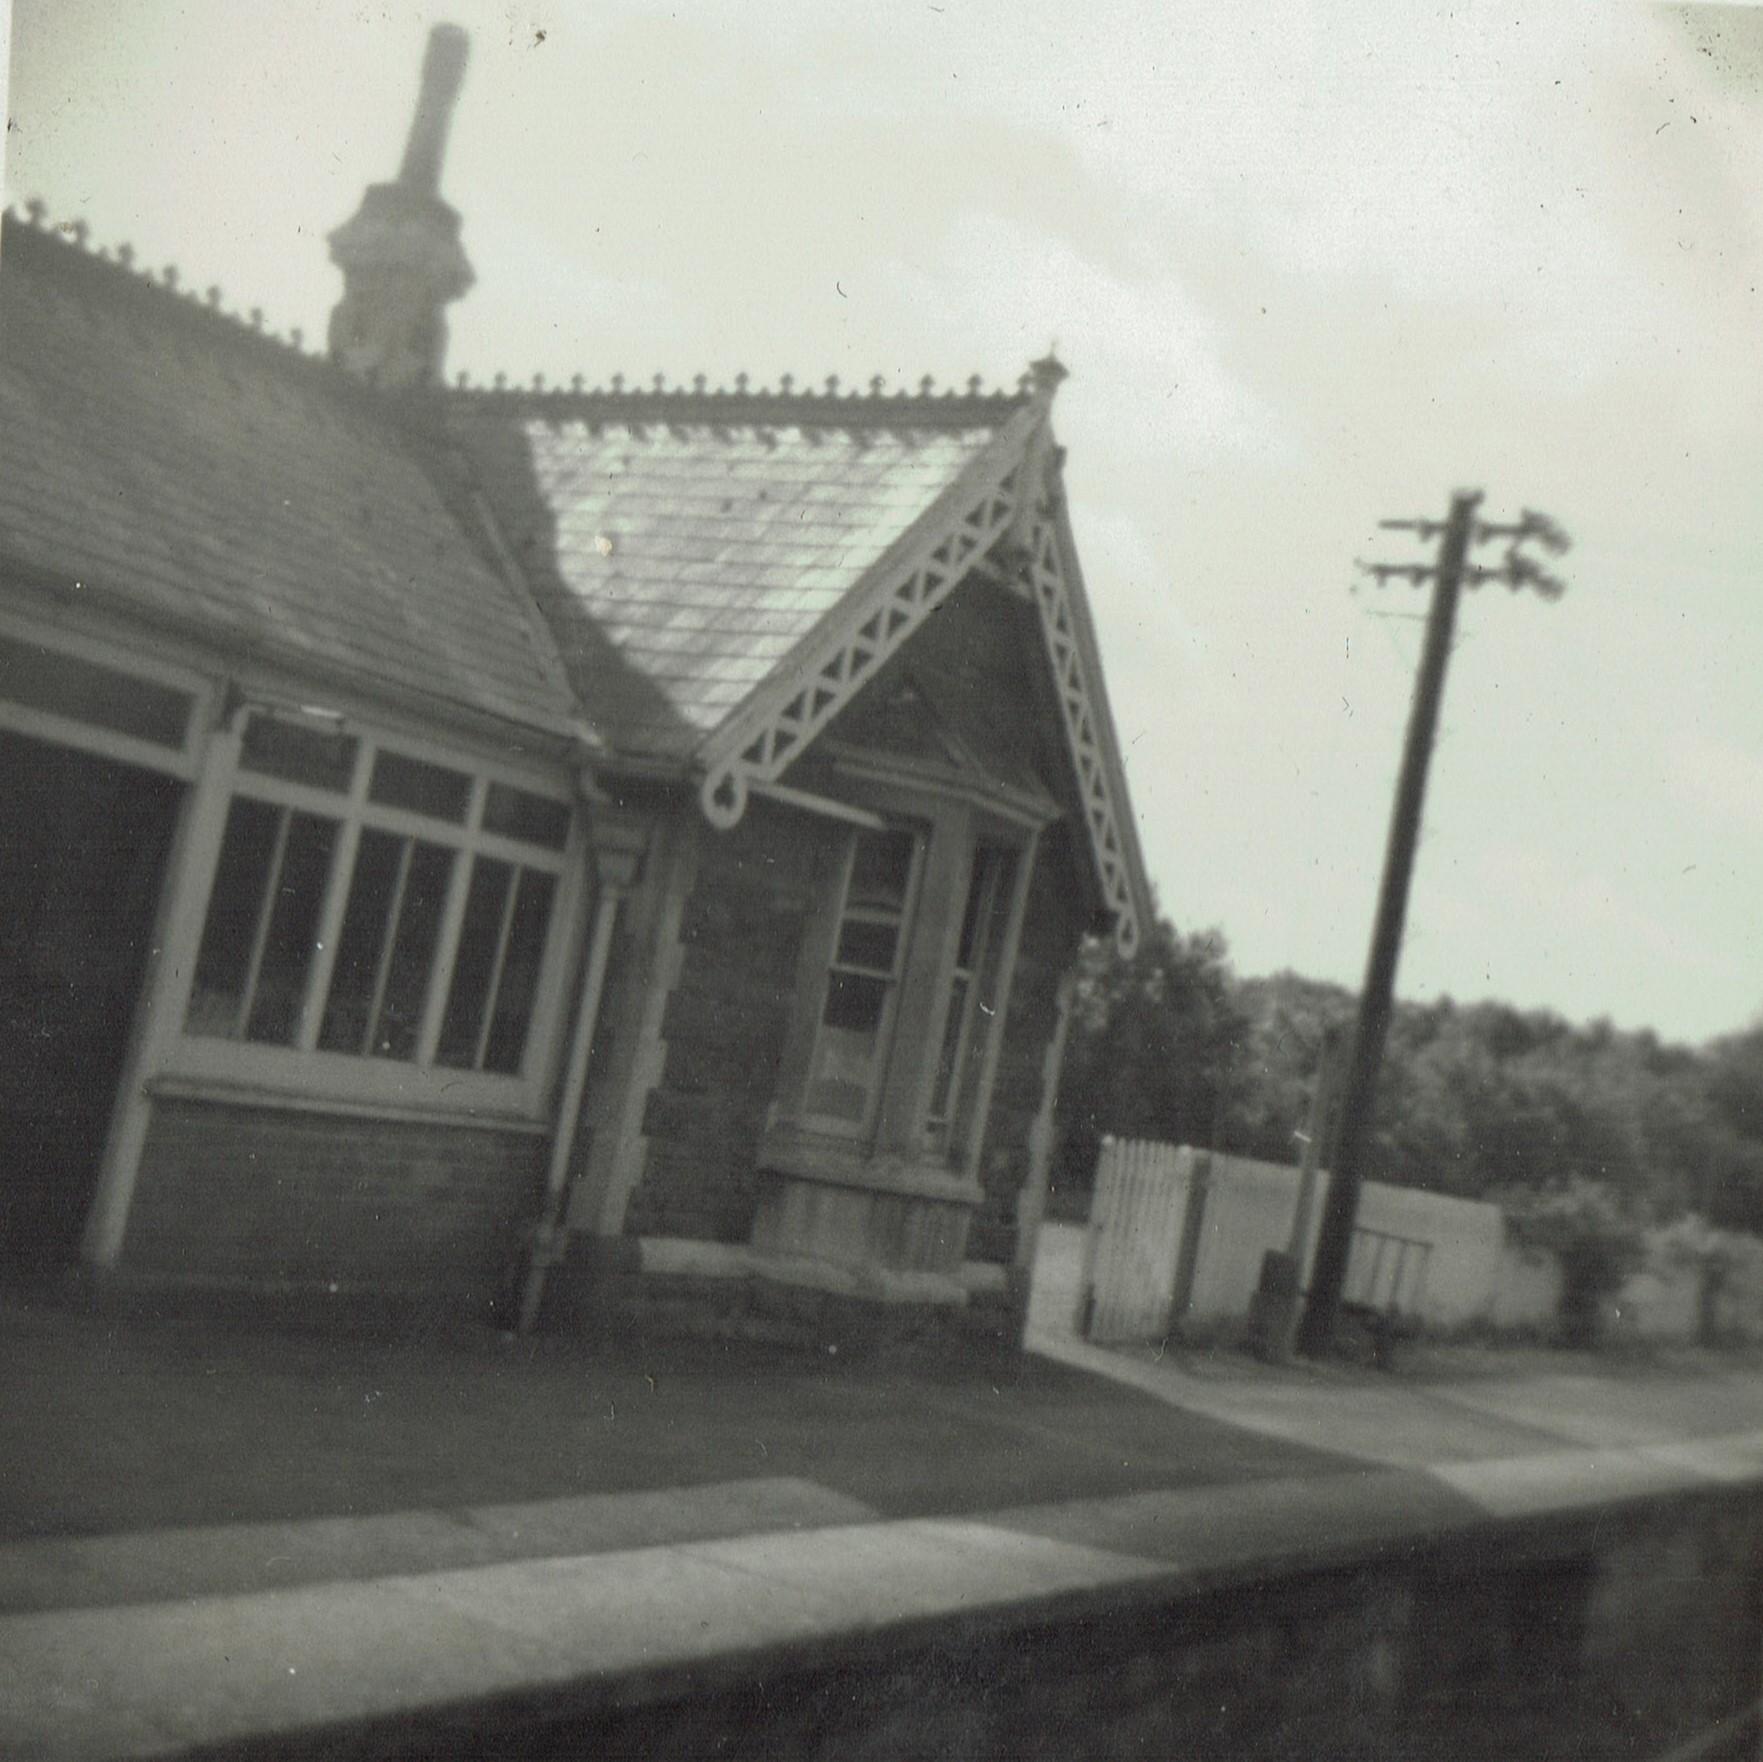 Cadeleigh Station